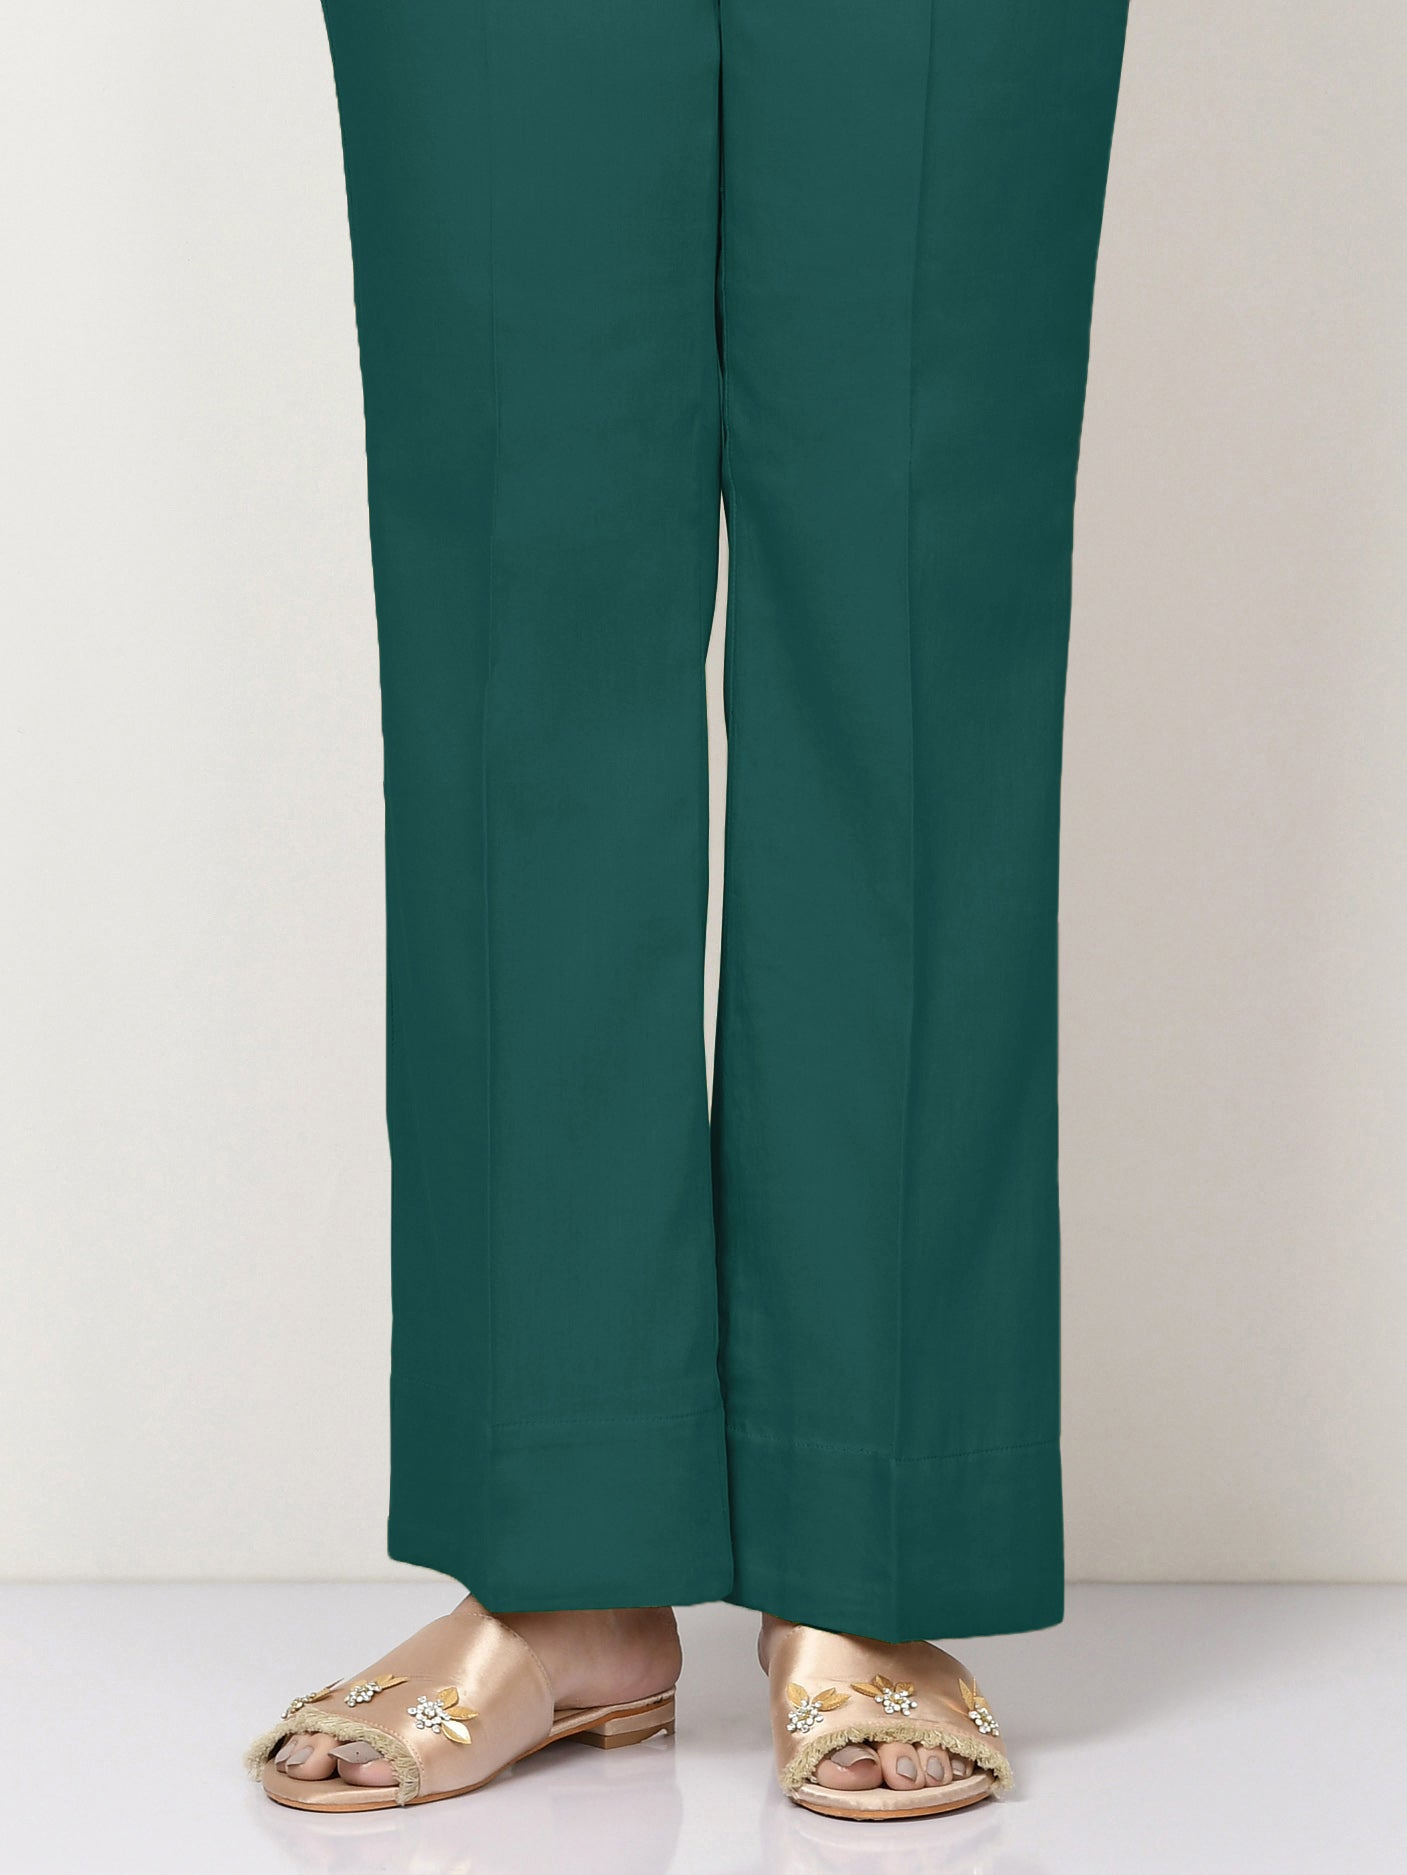 Unstitched Cambric Trouser - Teal Blue